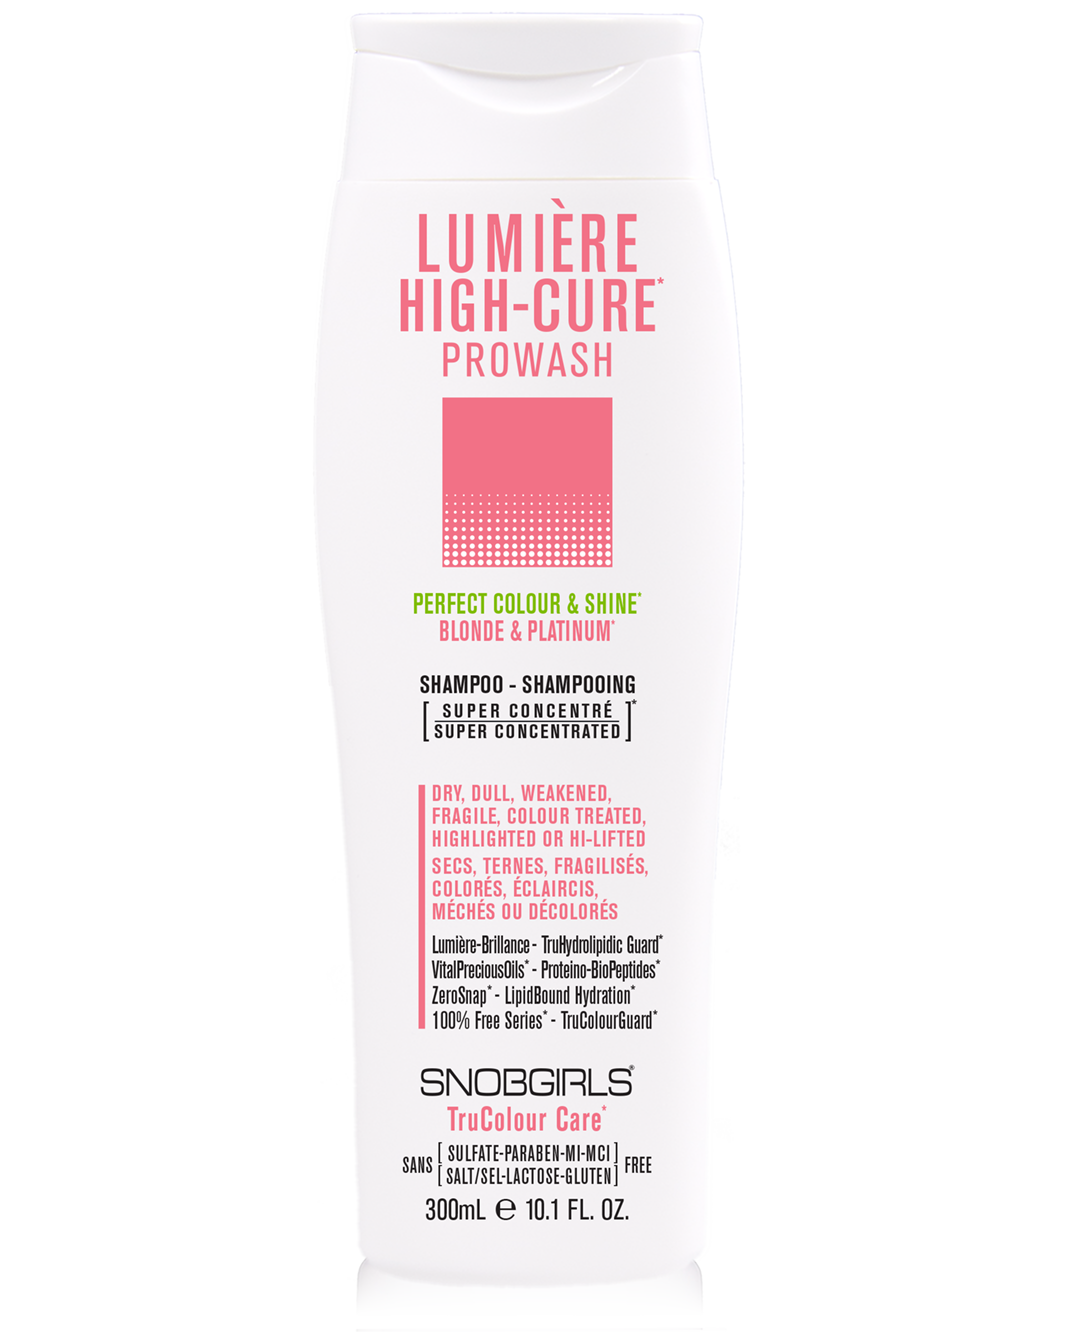 GIFT SETS- 6 X  Trio LUMIERE HIGH-CURE Perfect Colour & Shine  + Duo Liters - SNOBGIRLS.com